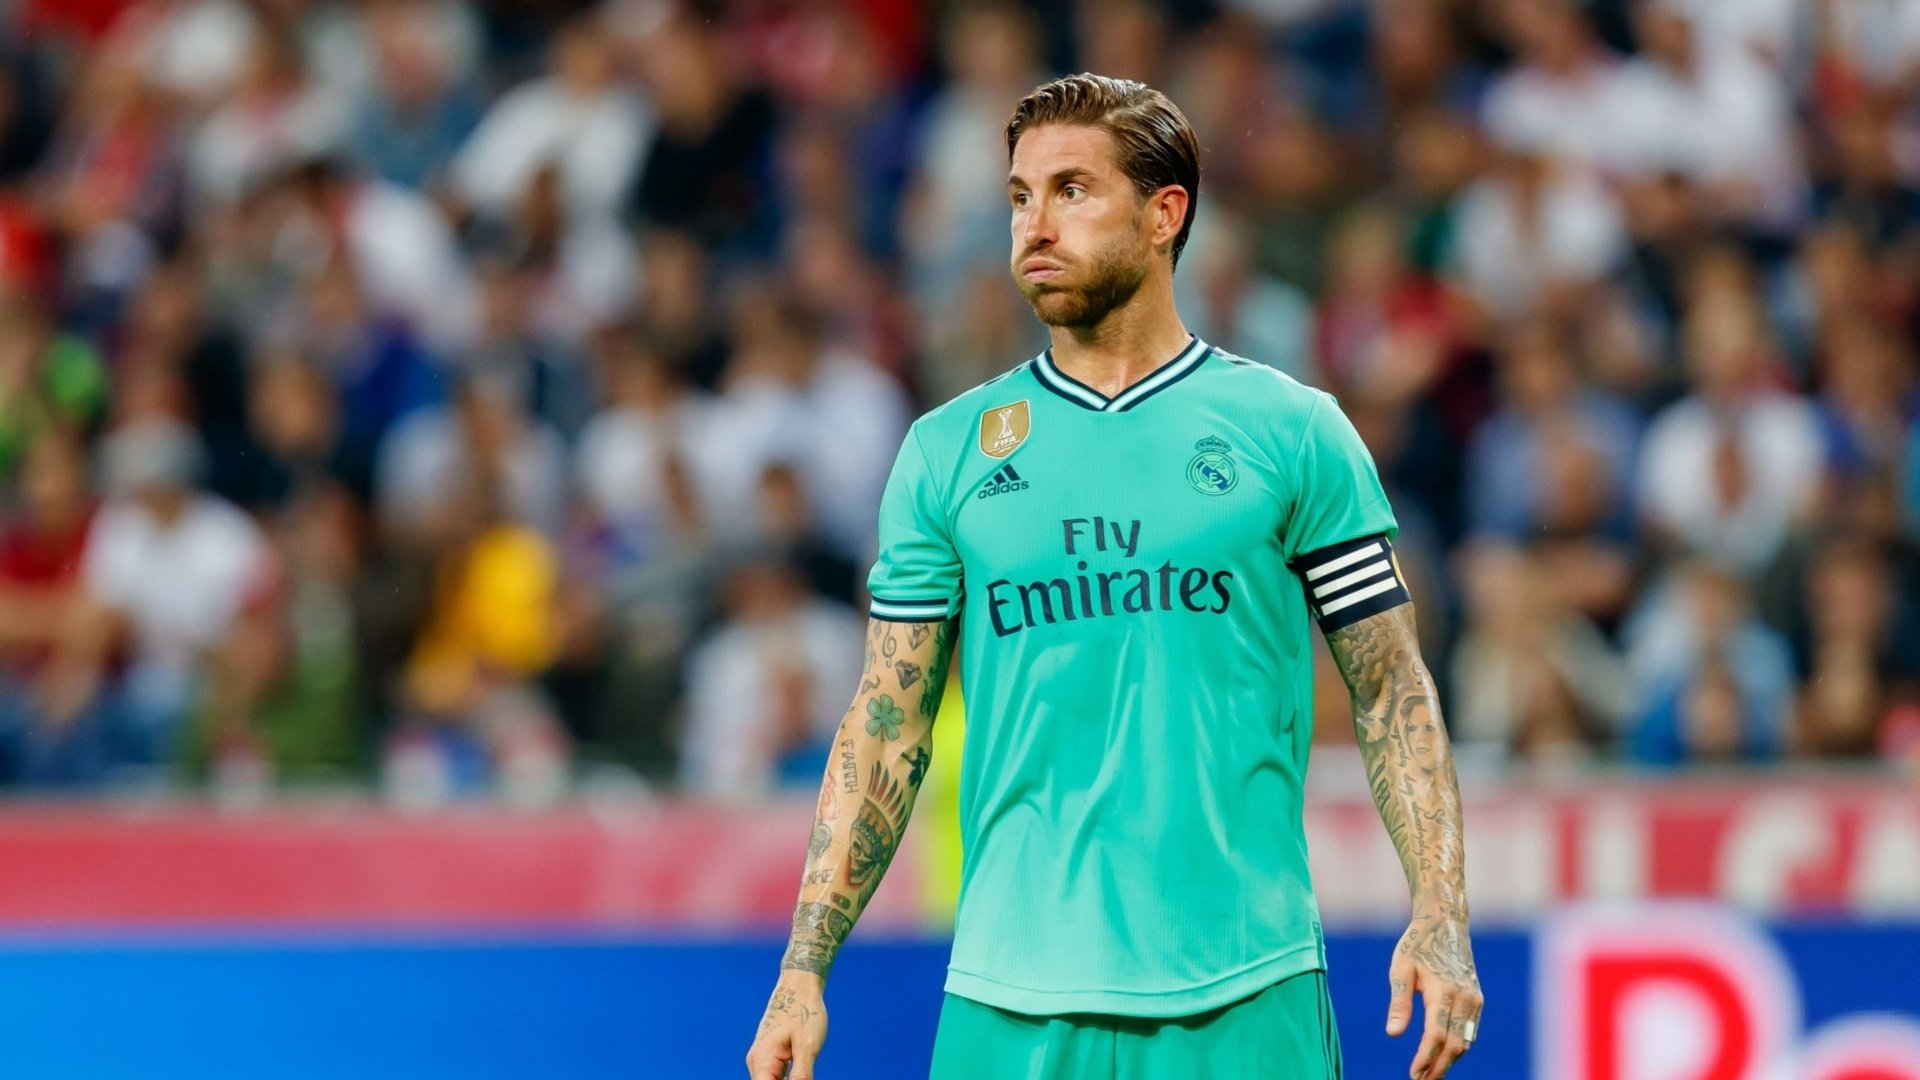 Ramos misses training ahead of Roma friendly